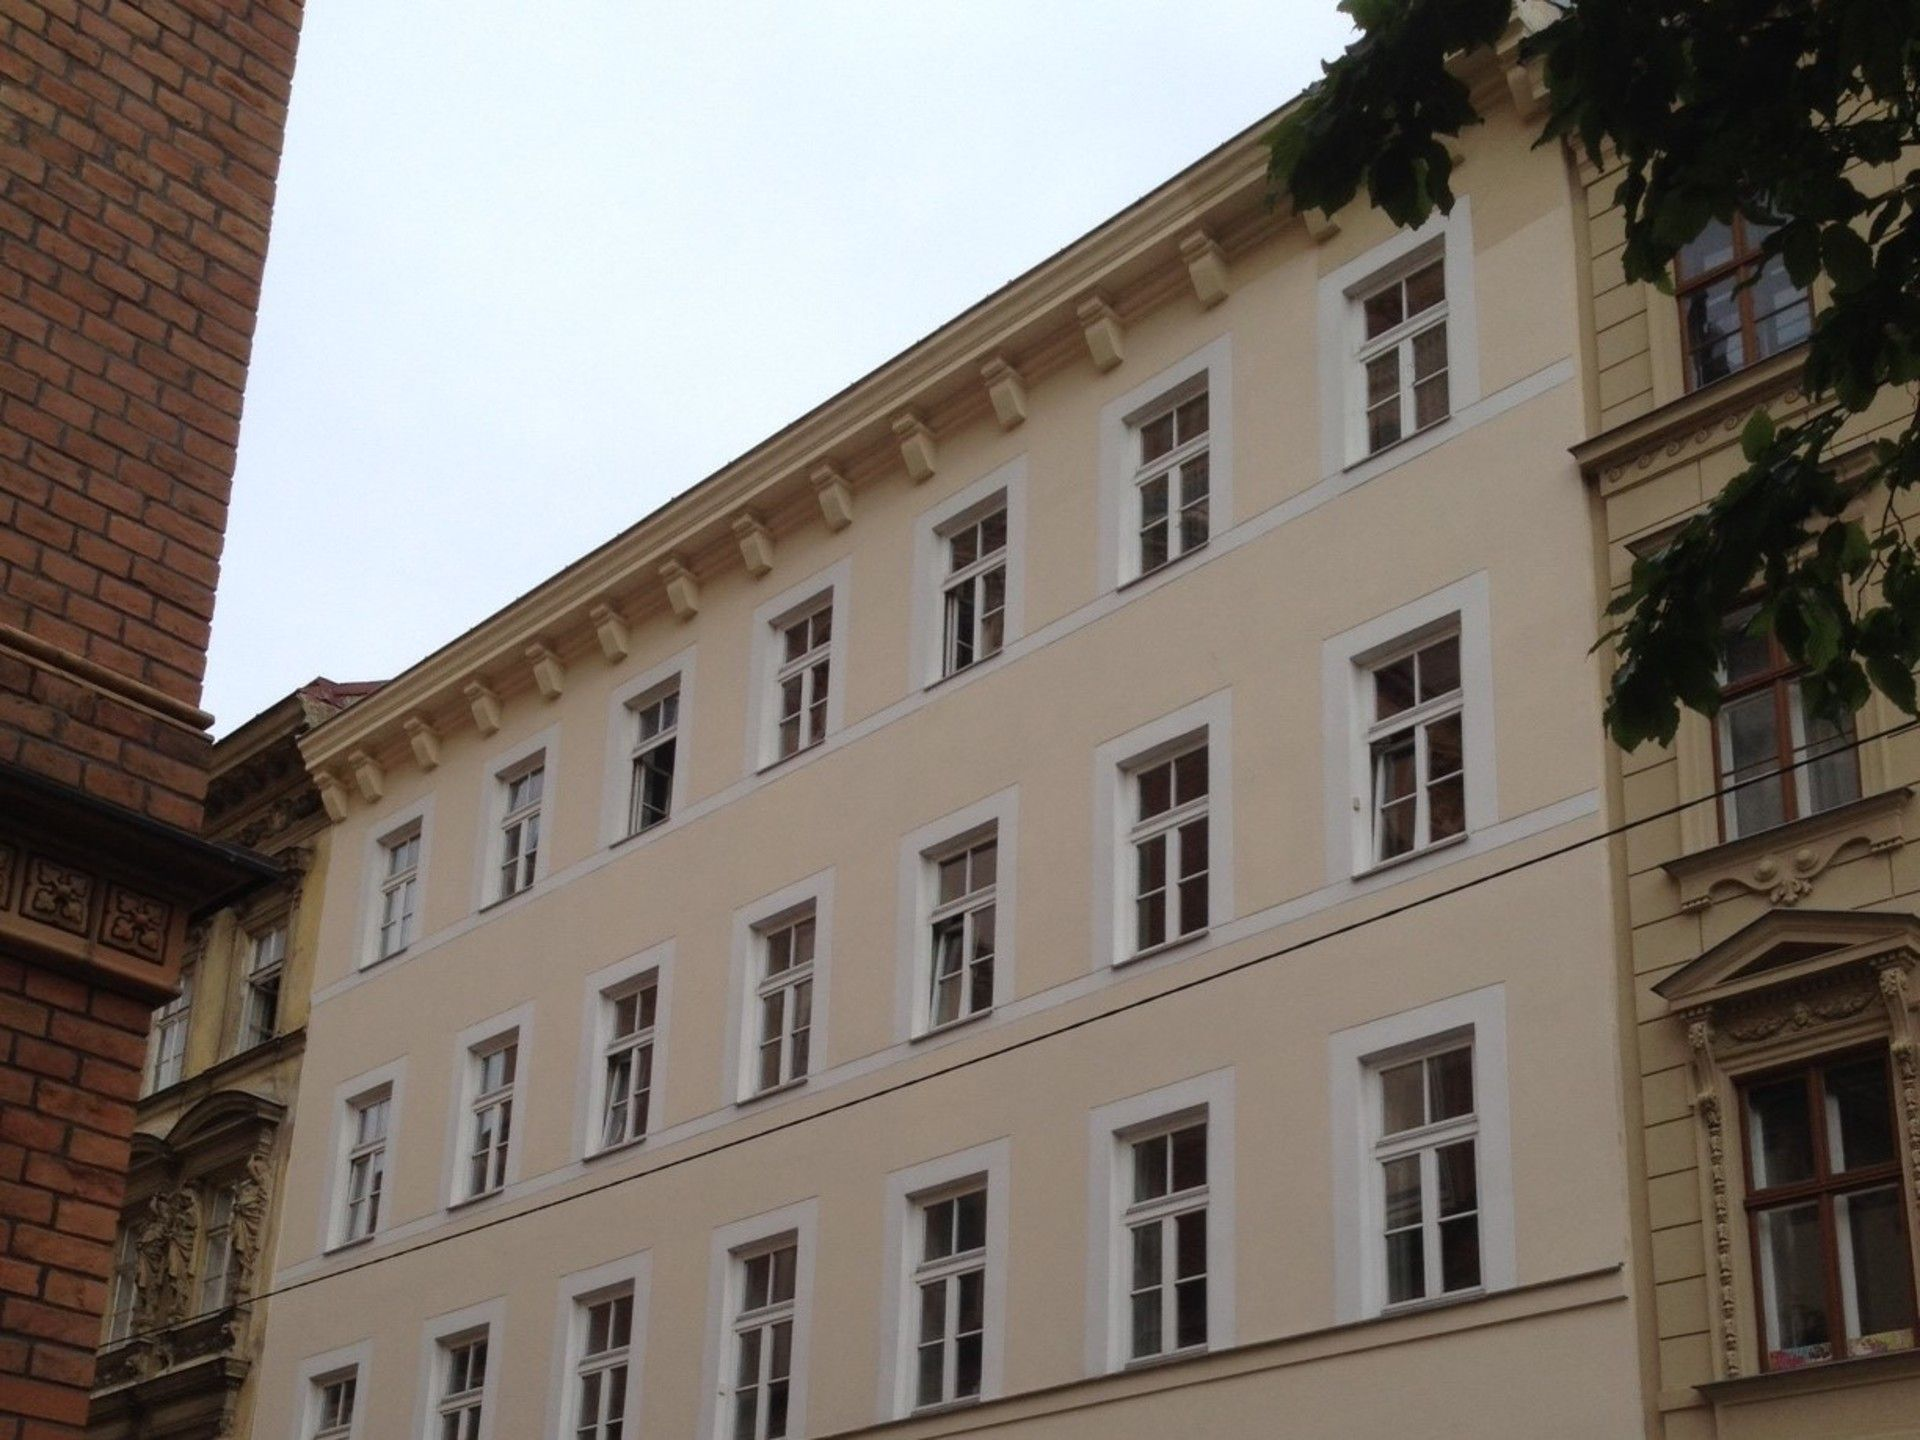 Tenant-occupied apartment buildings, 1070 Vienna